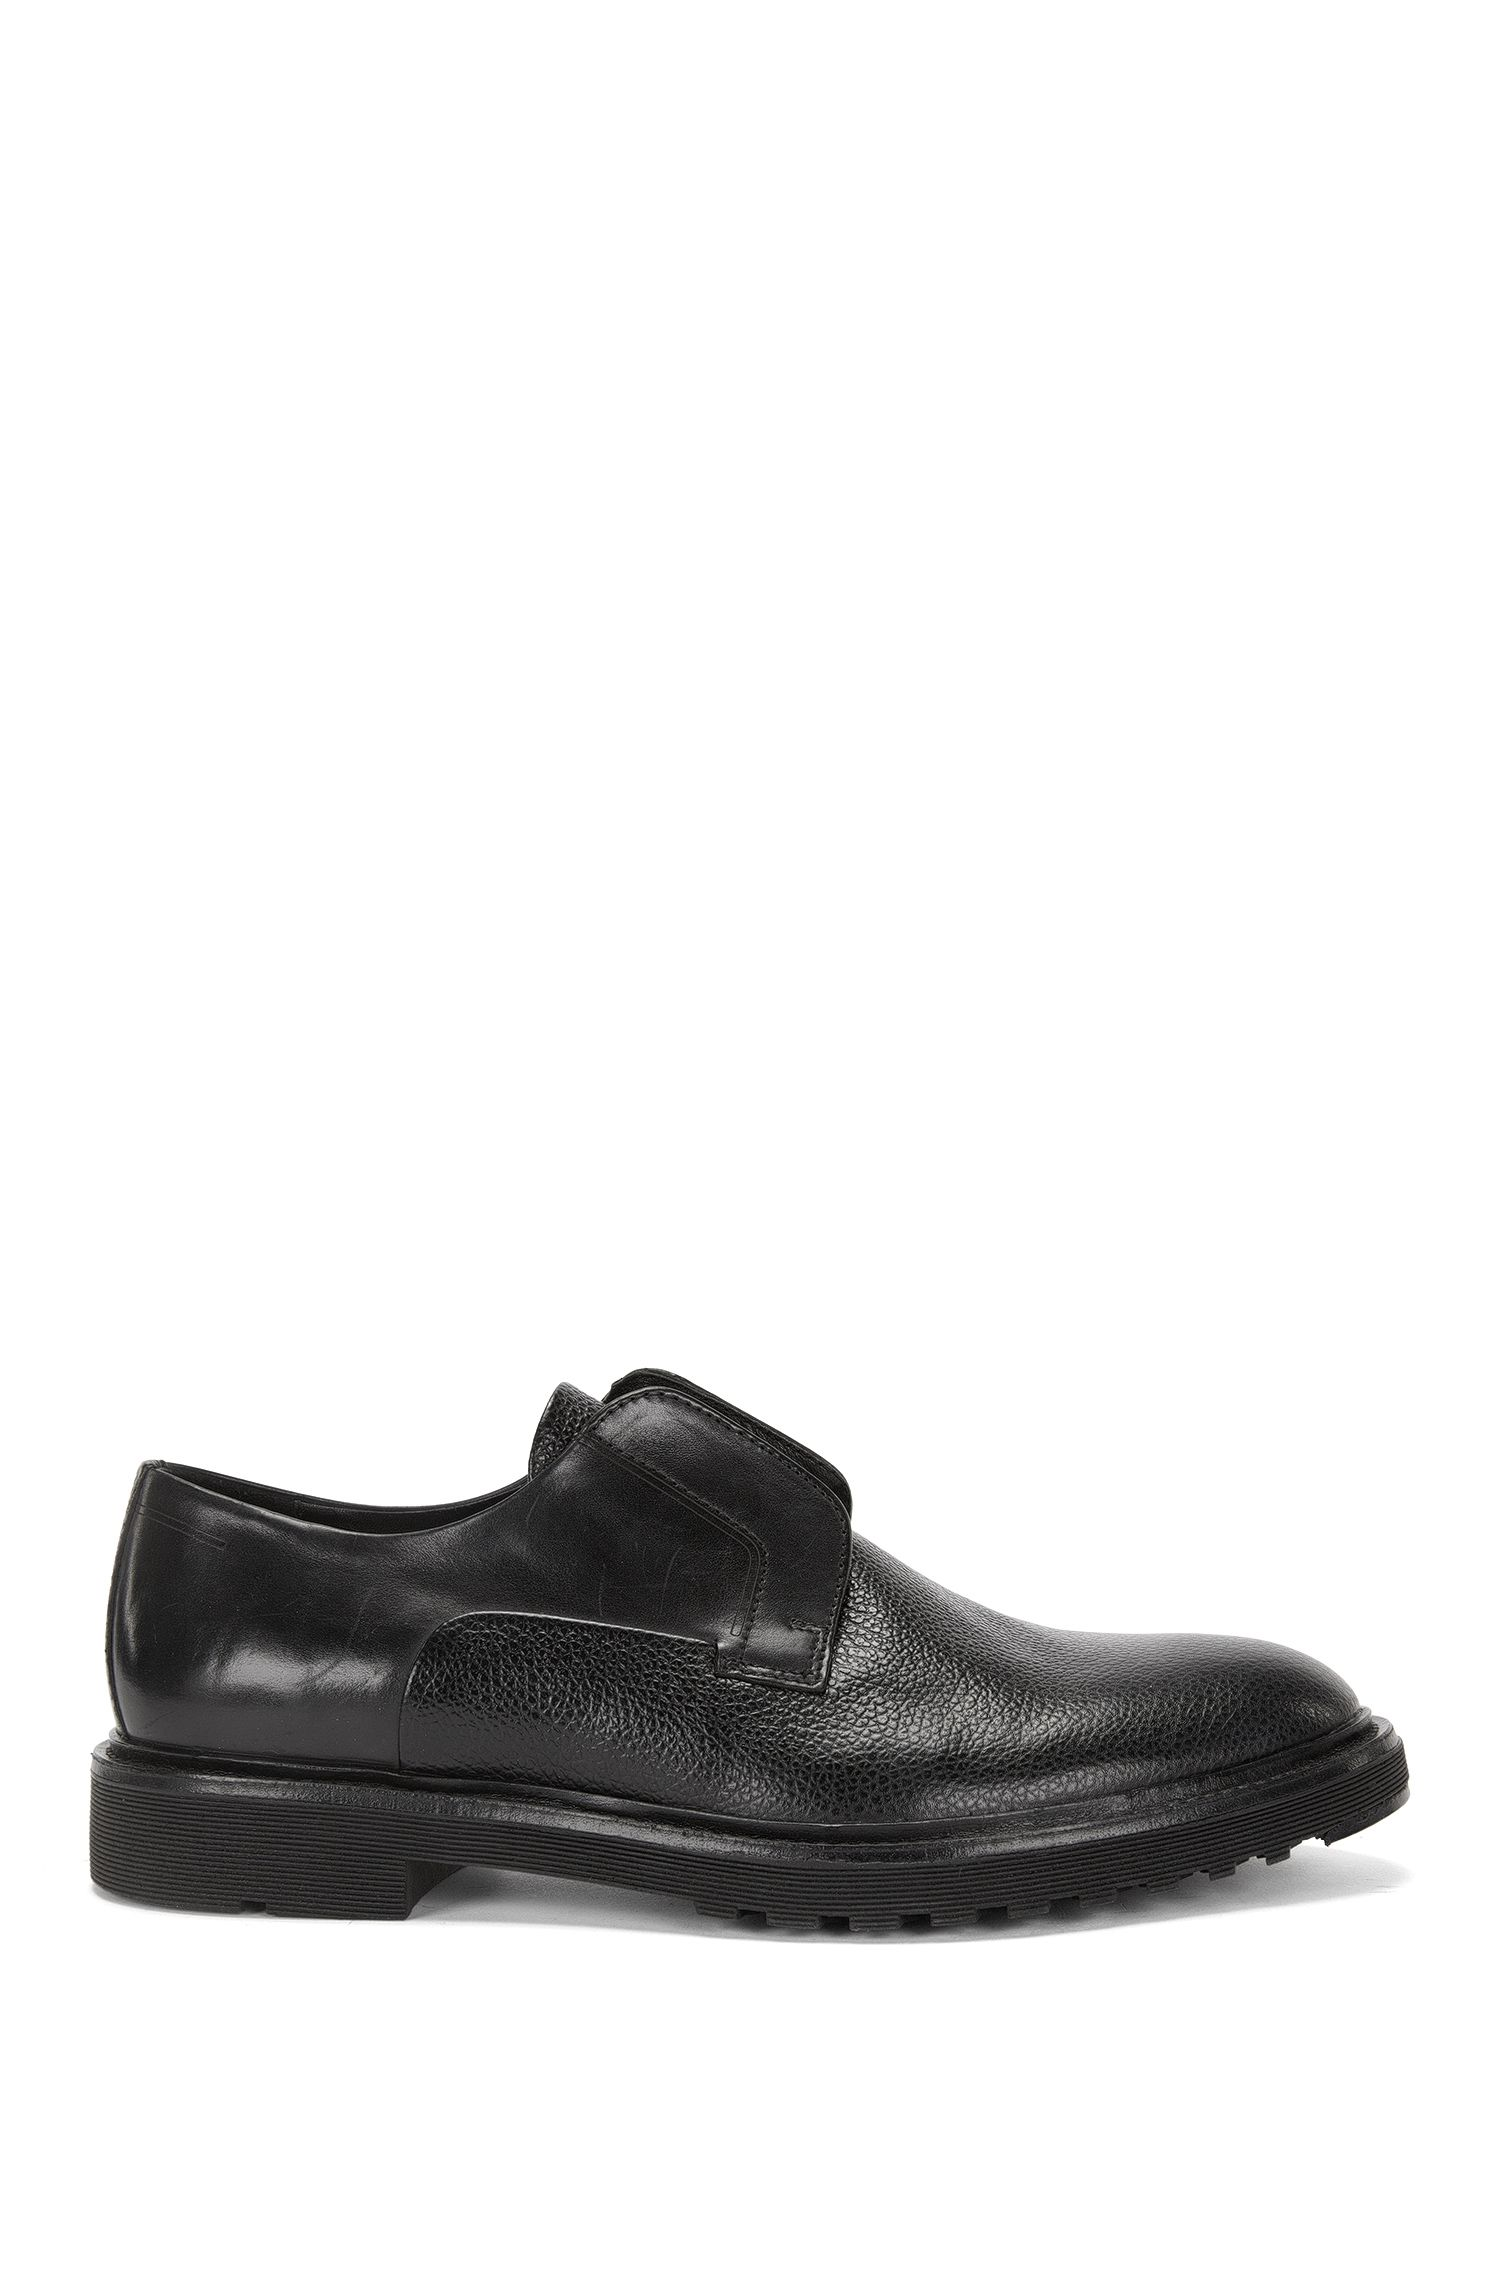 'Pure Slon Plgr ' | Leather Slip-On Derby Shoes